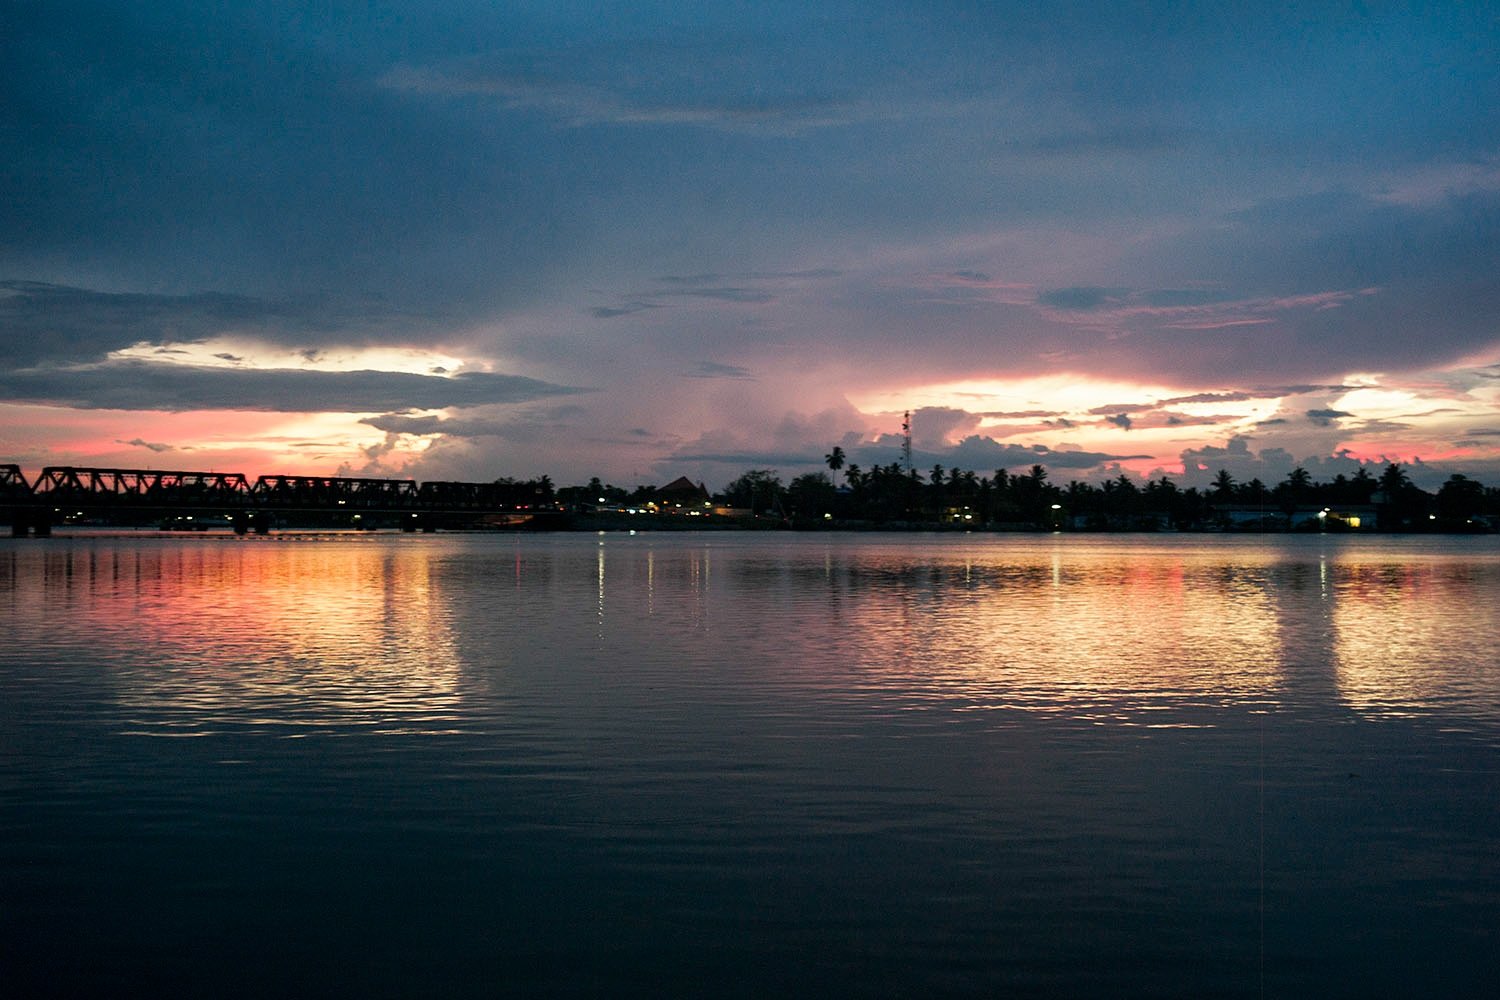 A thunderstorm approaches over the Batticaloa lagoon and Kallady Bridge. These lagoons were once fired across during the war, the Sri Lankan military from the town and the LTTE in the villages.